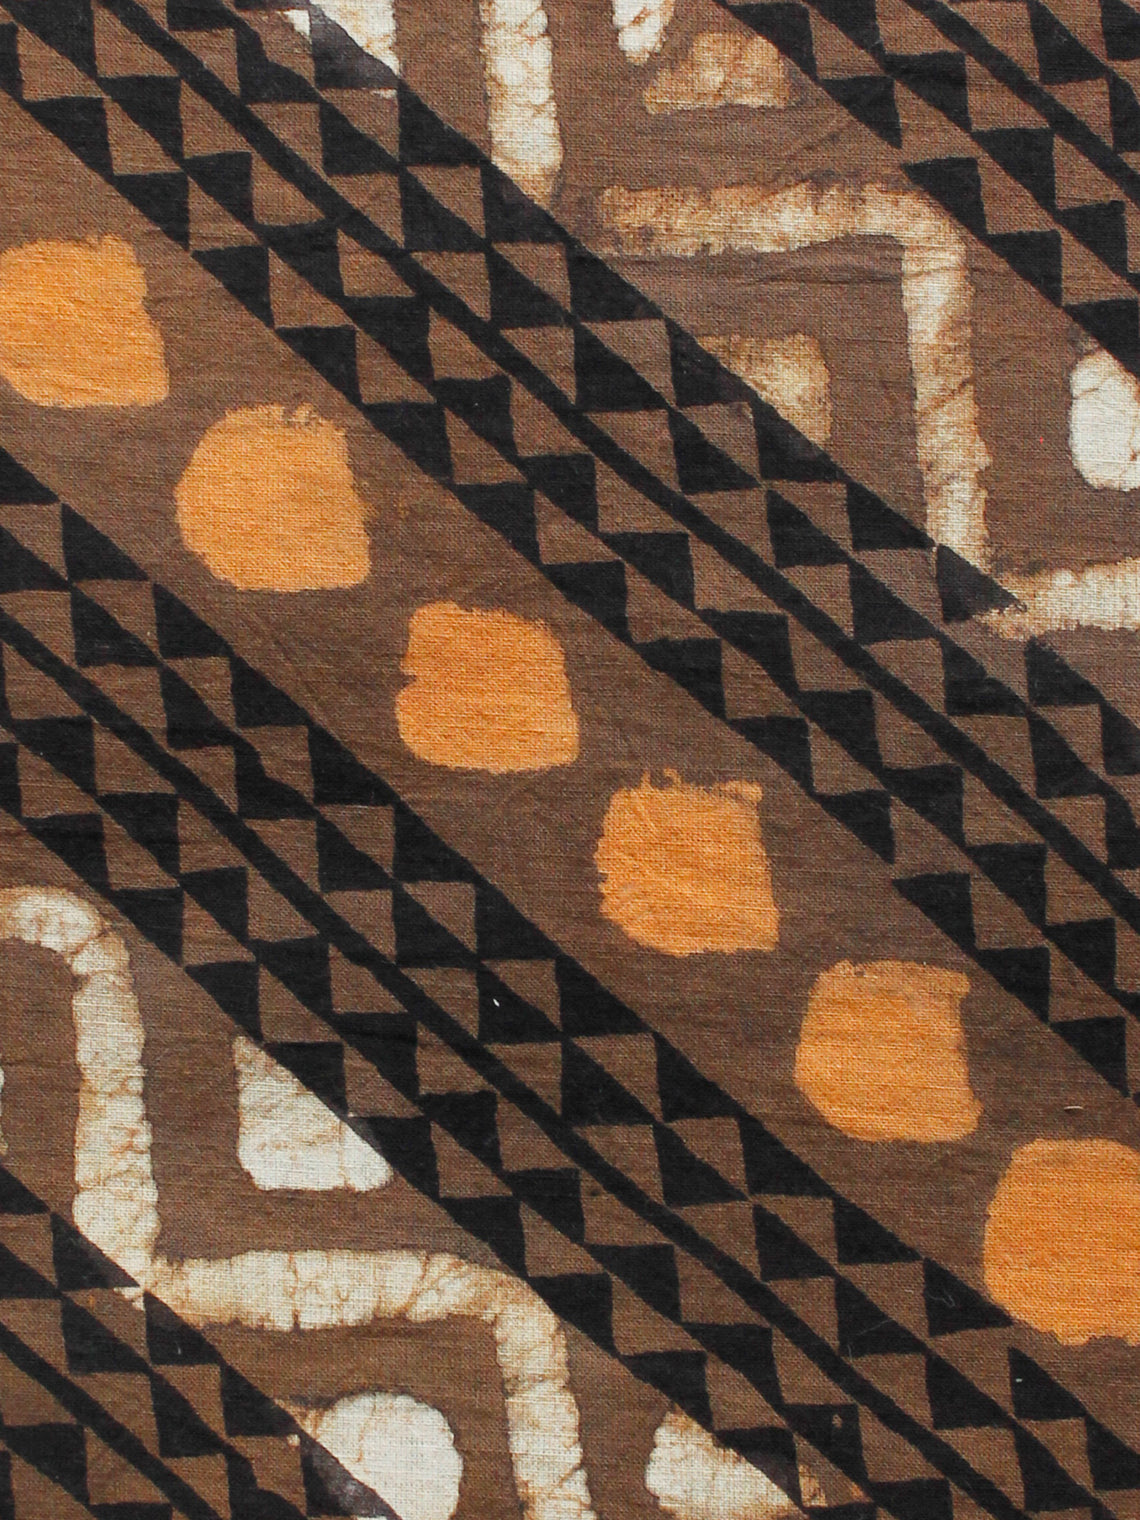 Kashish Brown Mustard Ivory Black Hand Block Printed Cotton Fabric Per Meter - F001F1725